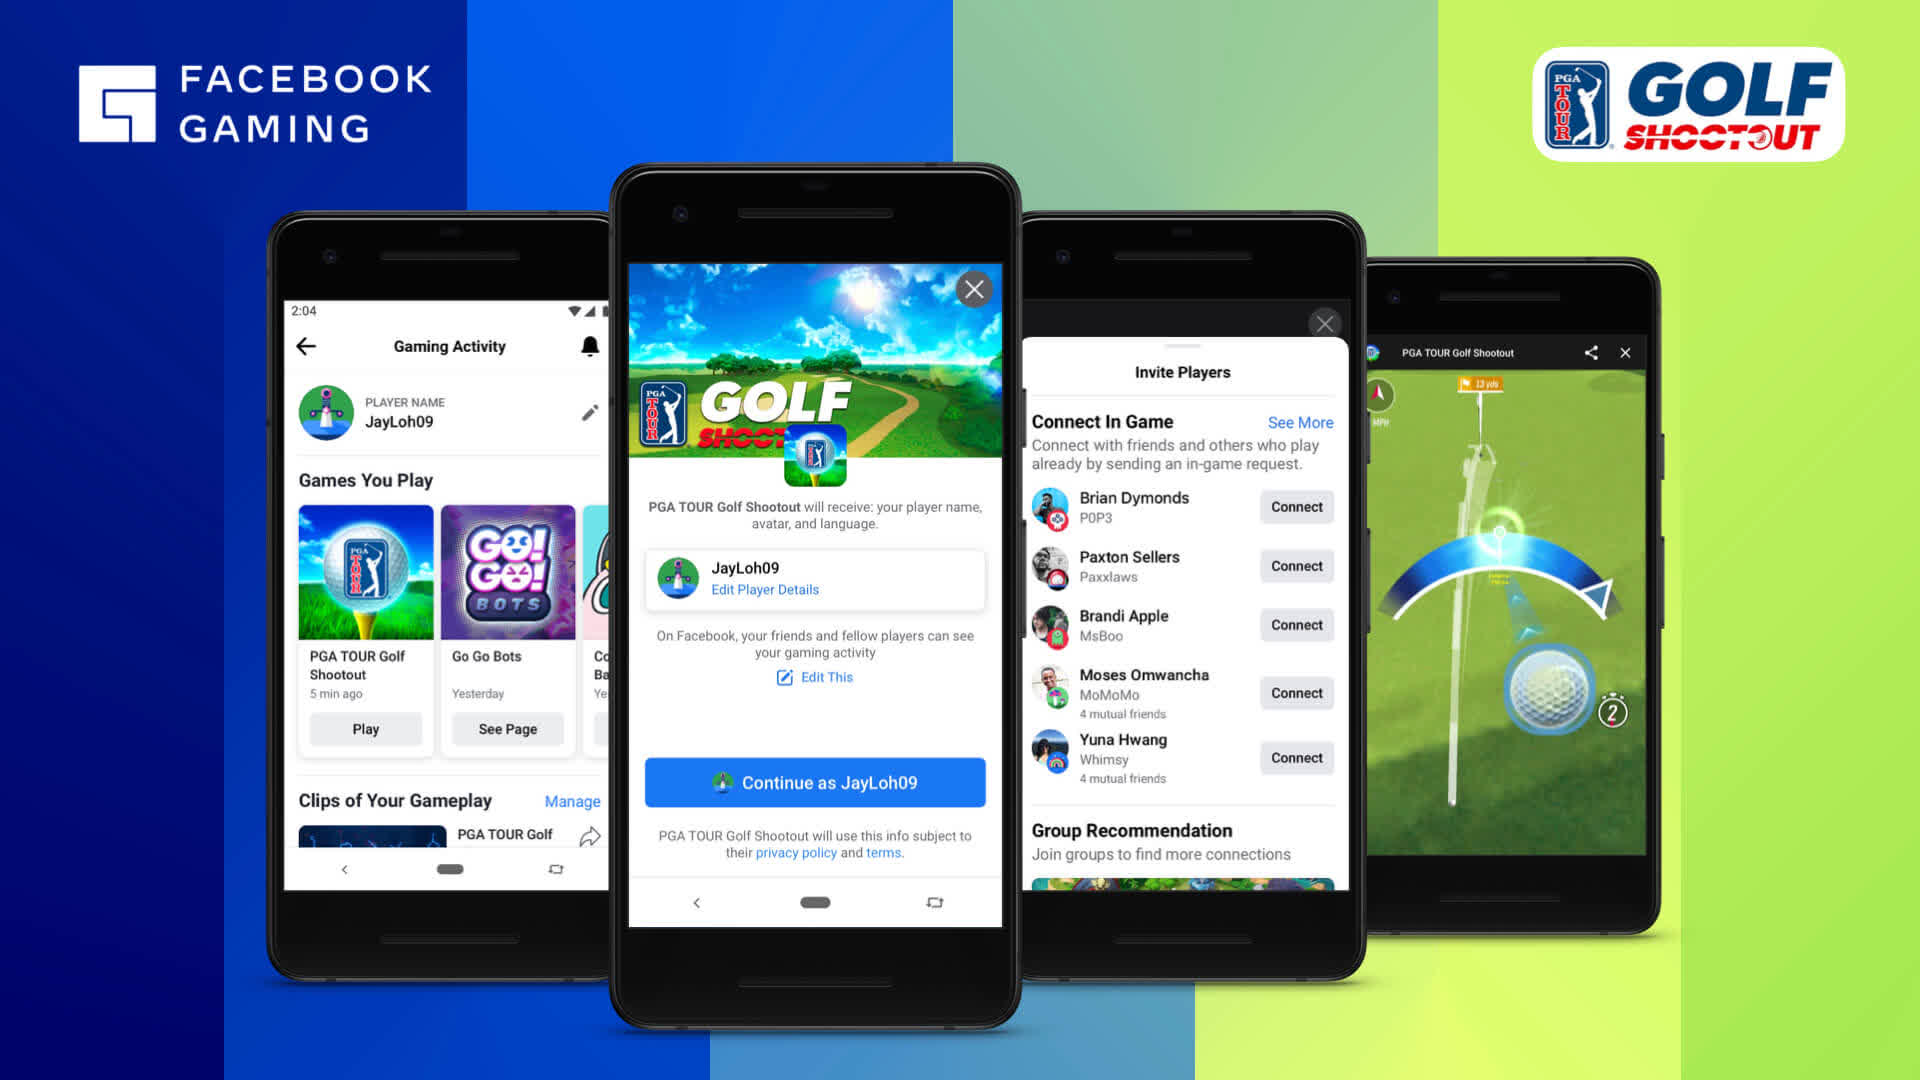 Facebook Gaming: the cloud gaming service is now official